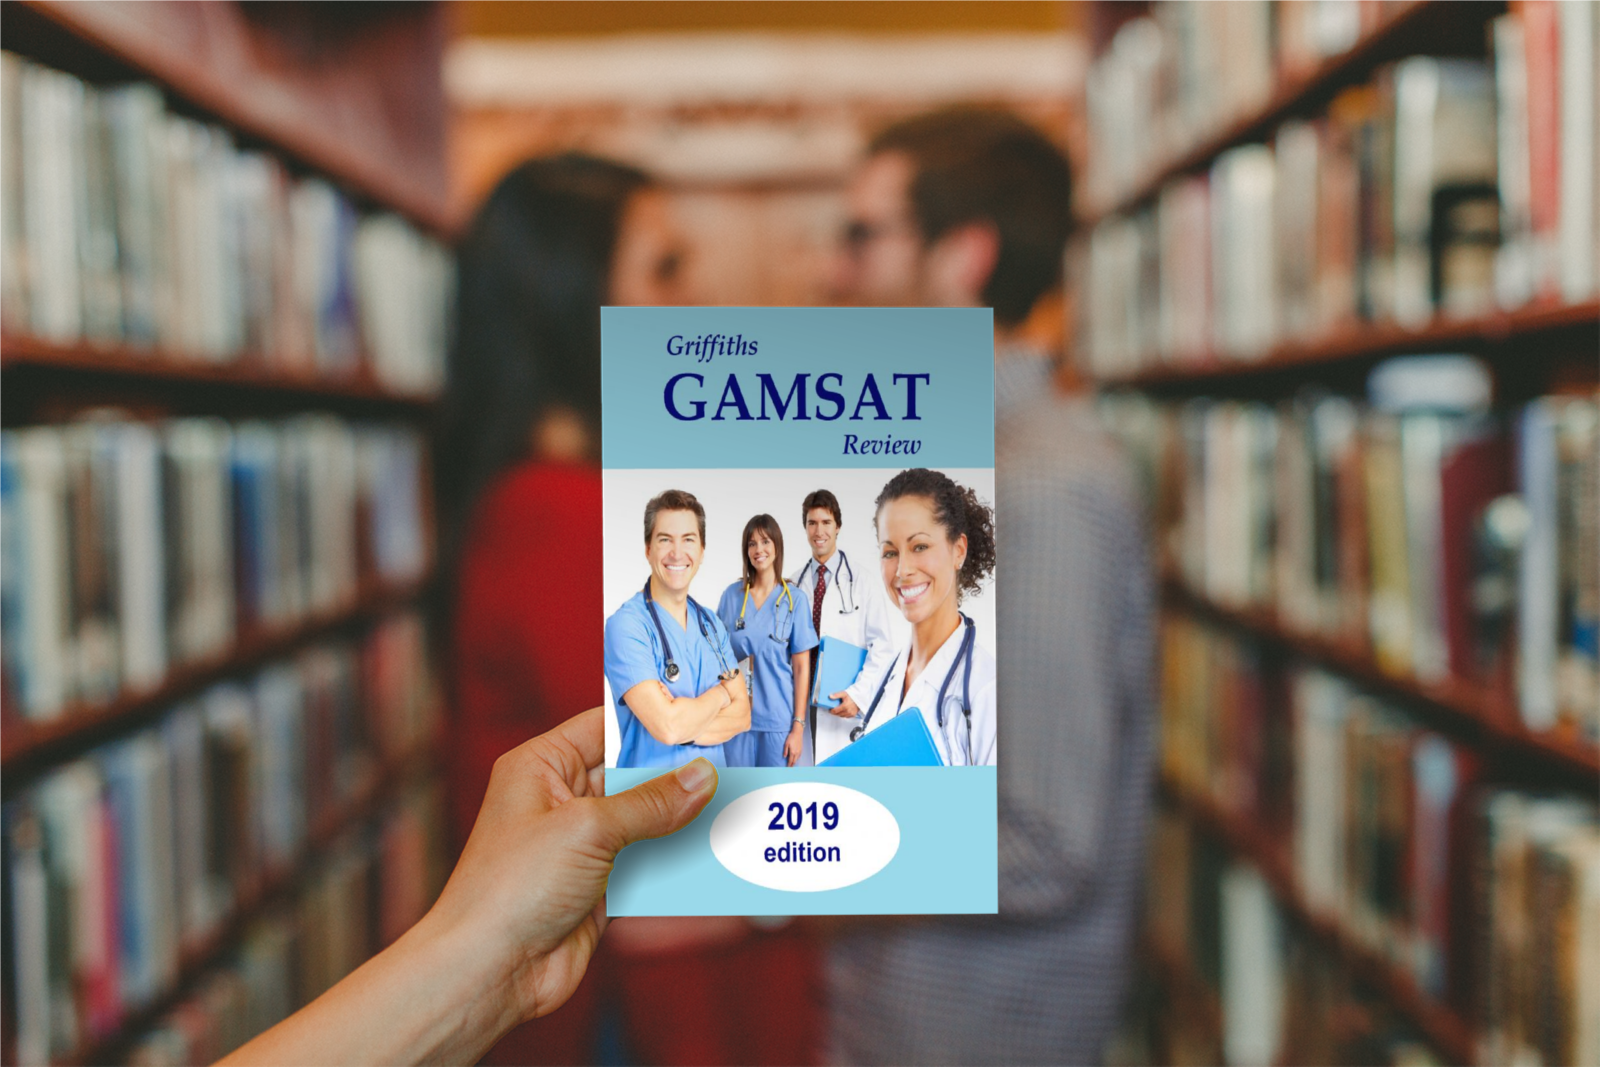 Gamsat review on table